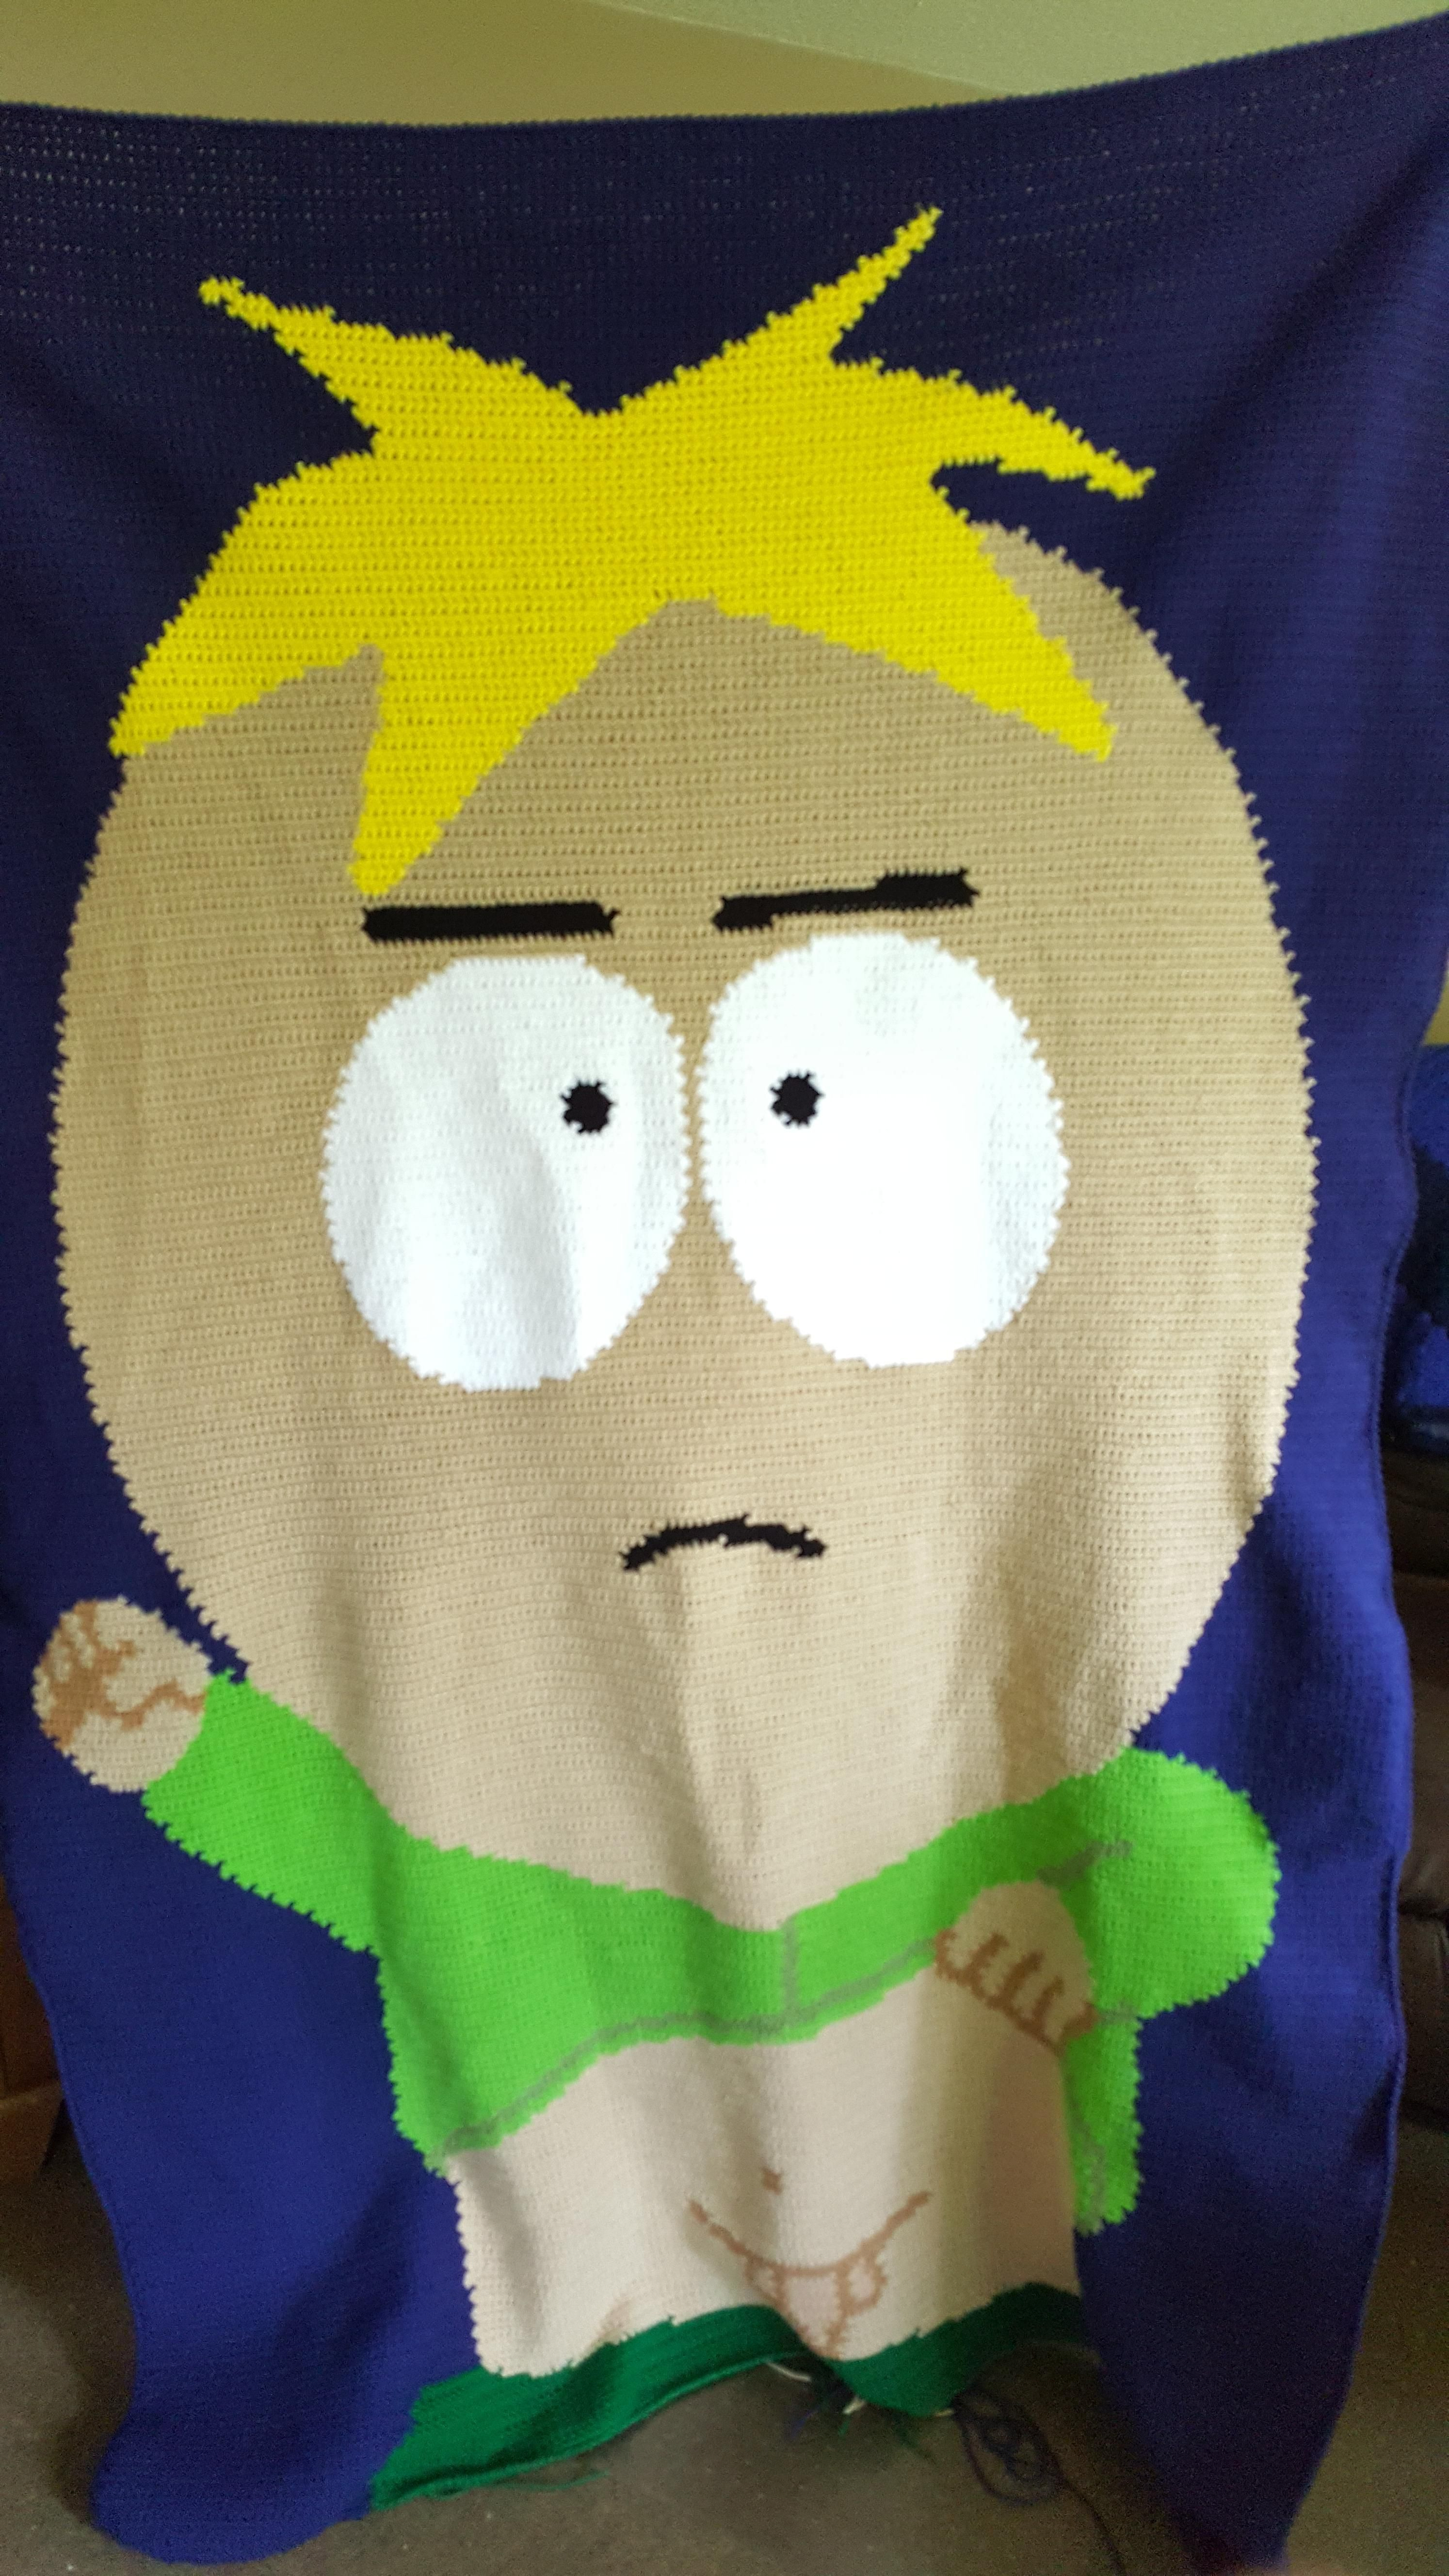 How about some Butters to brighten your day?